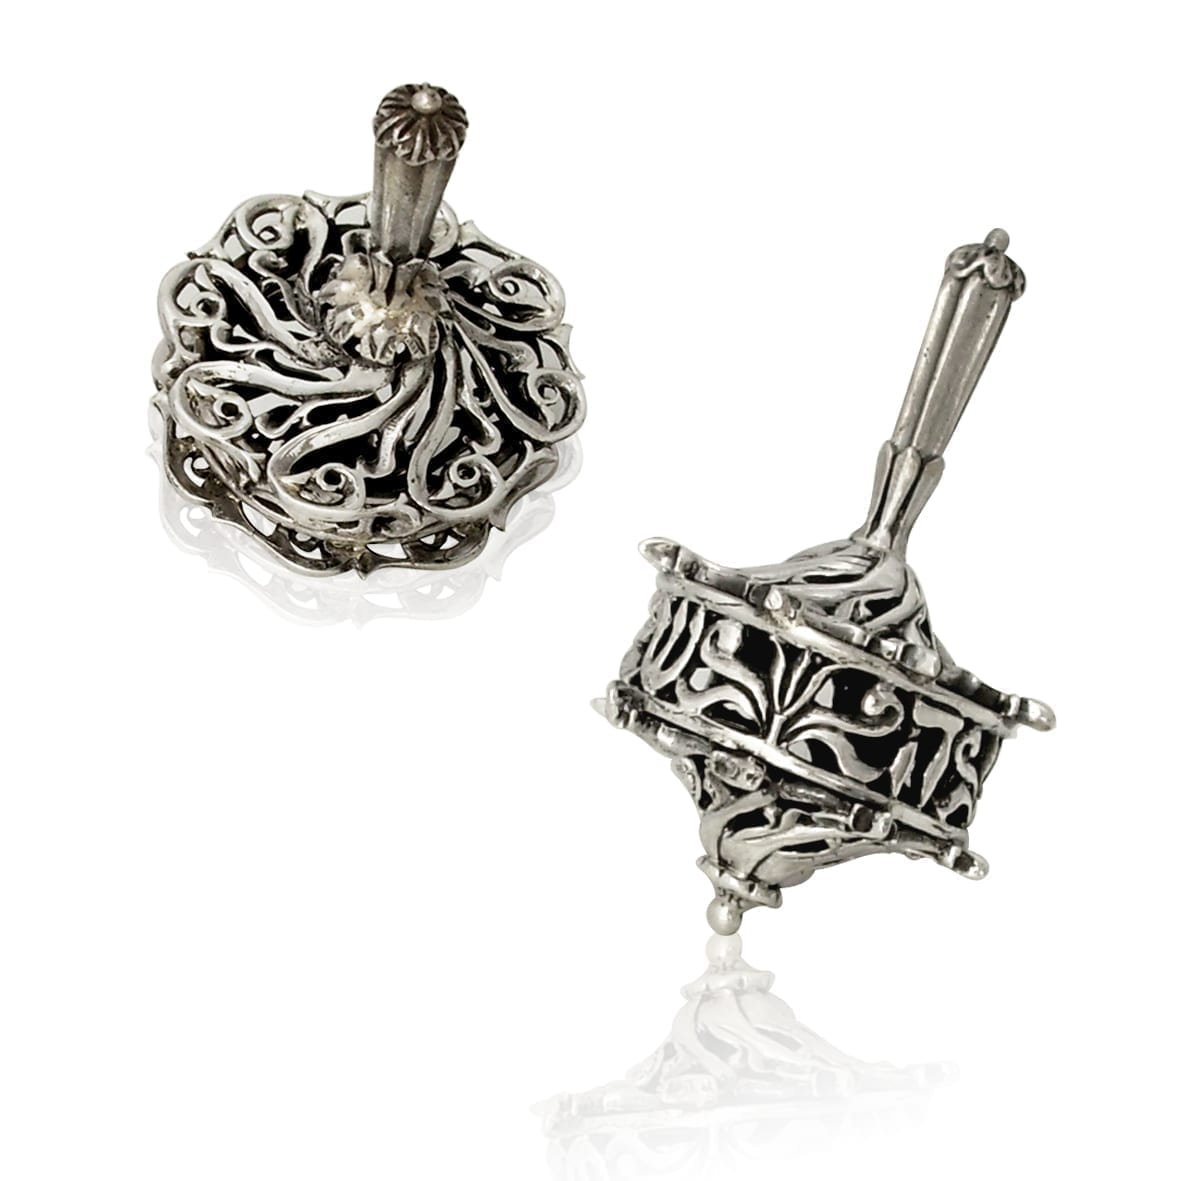 Sterling silver dreidel with cut-out, swirling designs. Hannukah Judaica gifts made in Israel